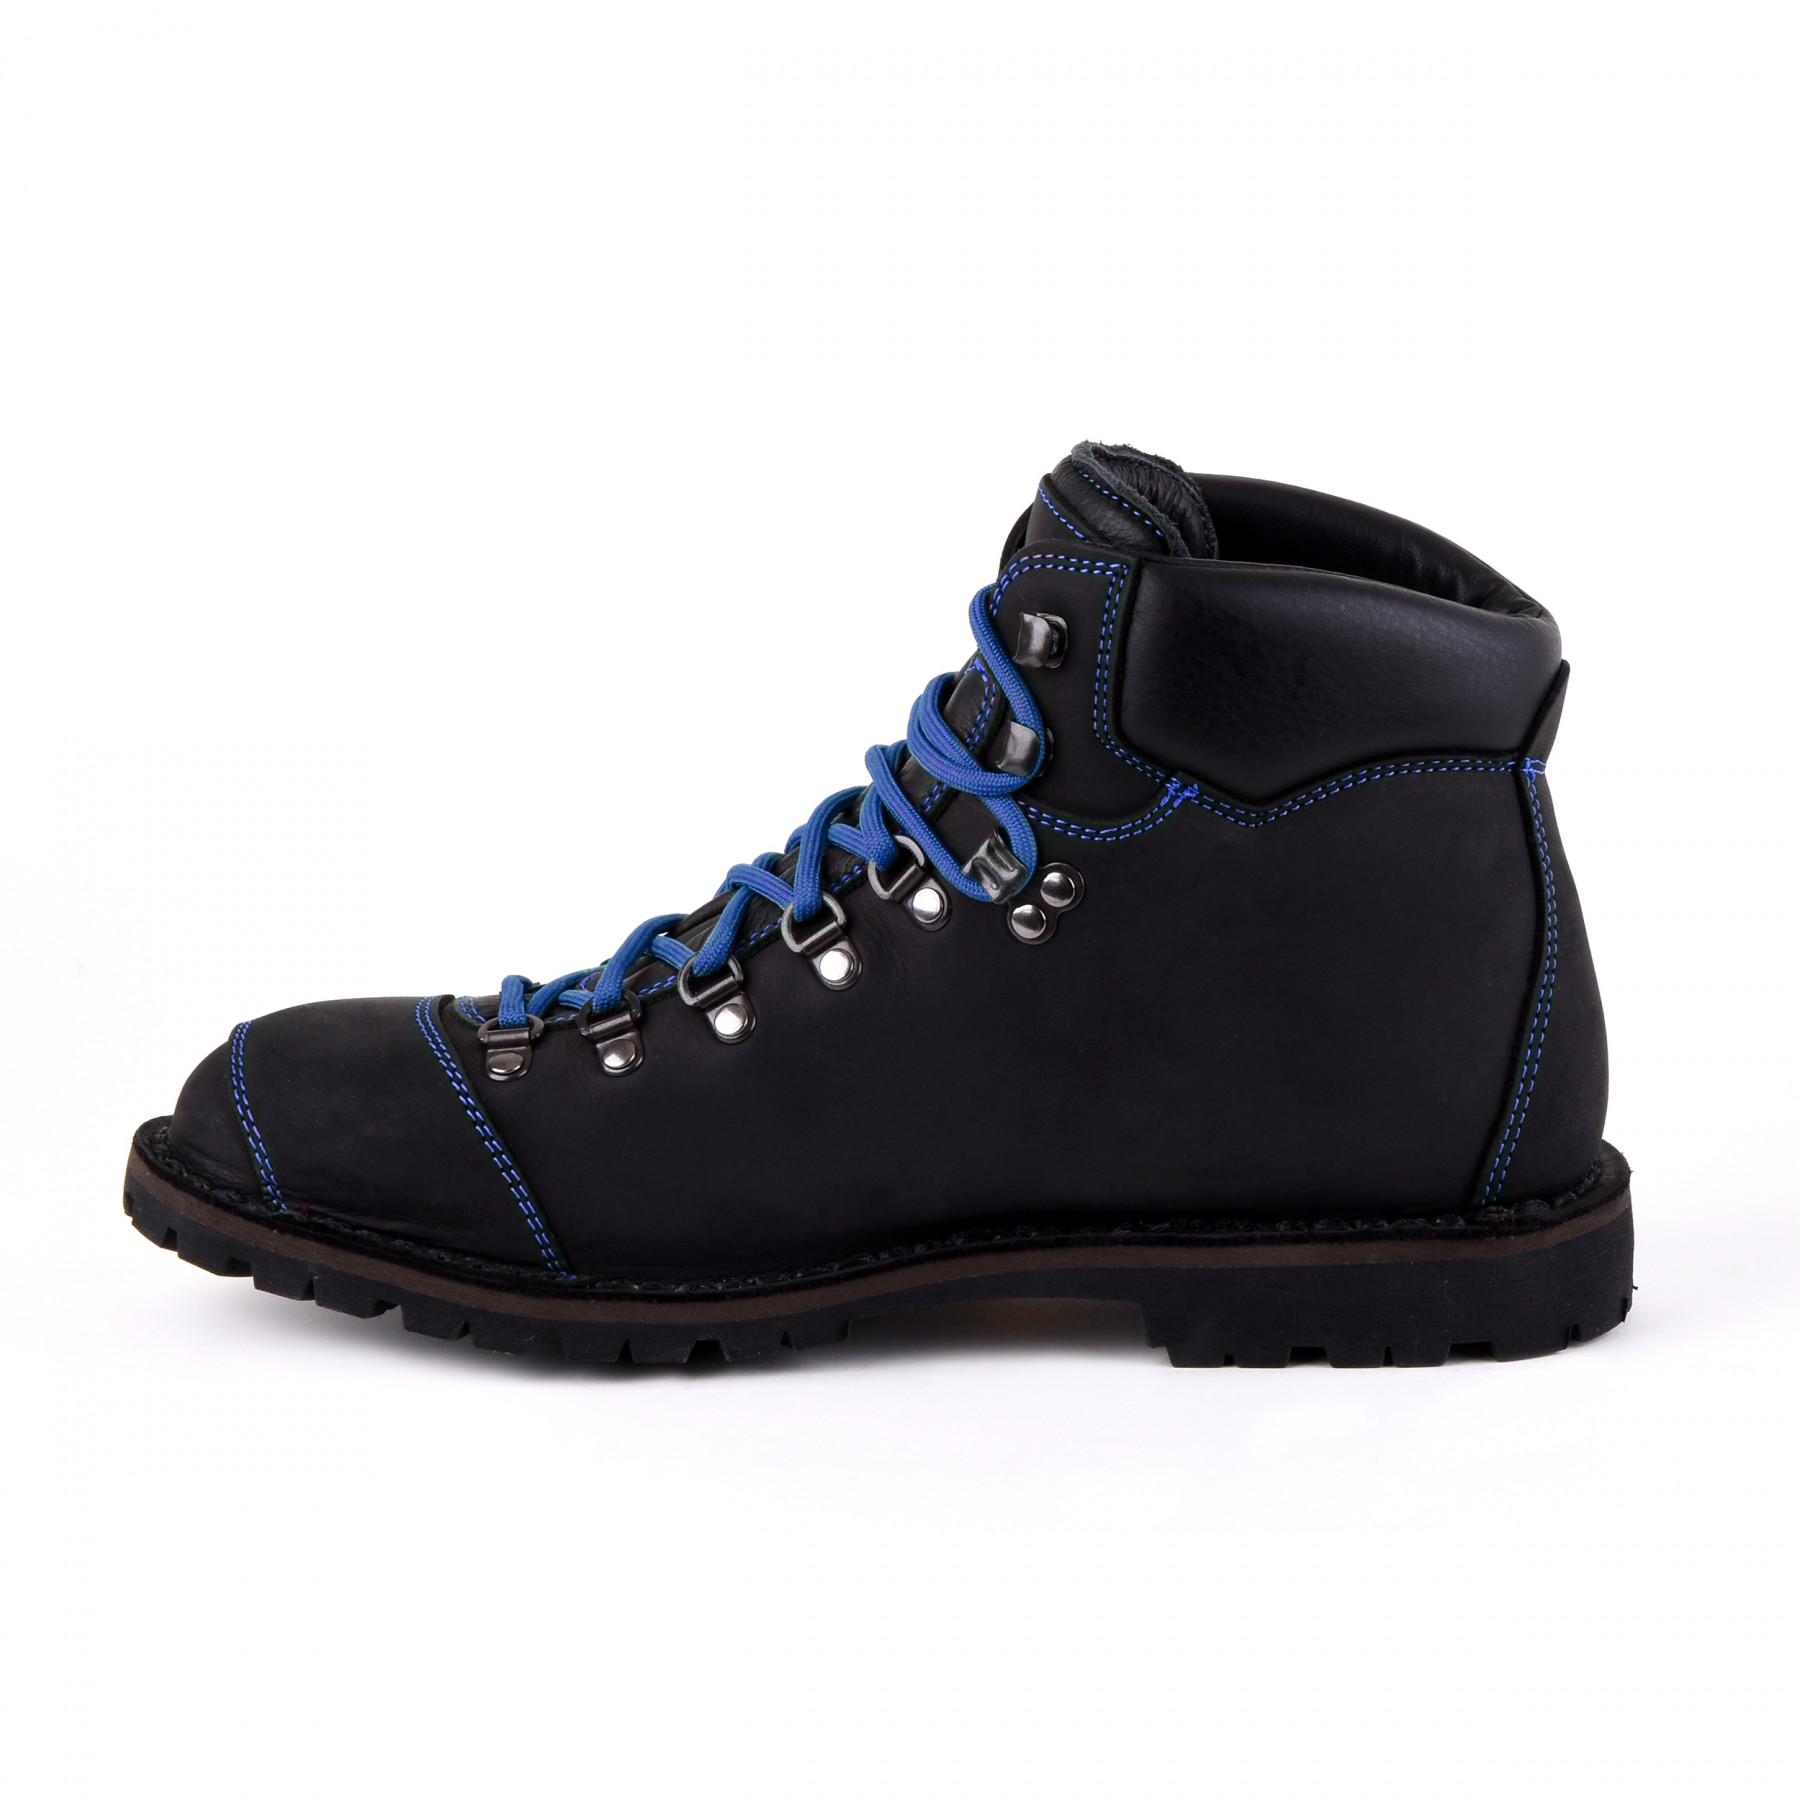 Biker Boot Adventure Denver Black, zwarte dames boot, blauw stiksel